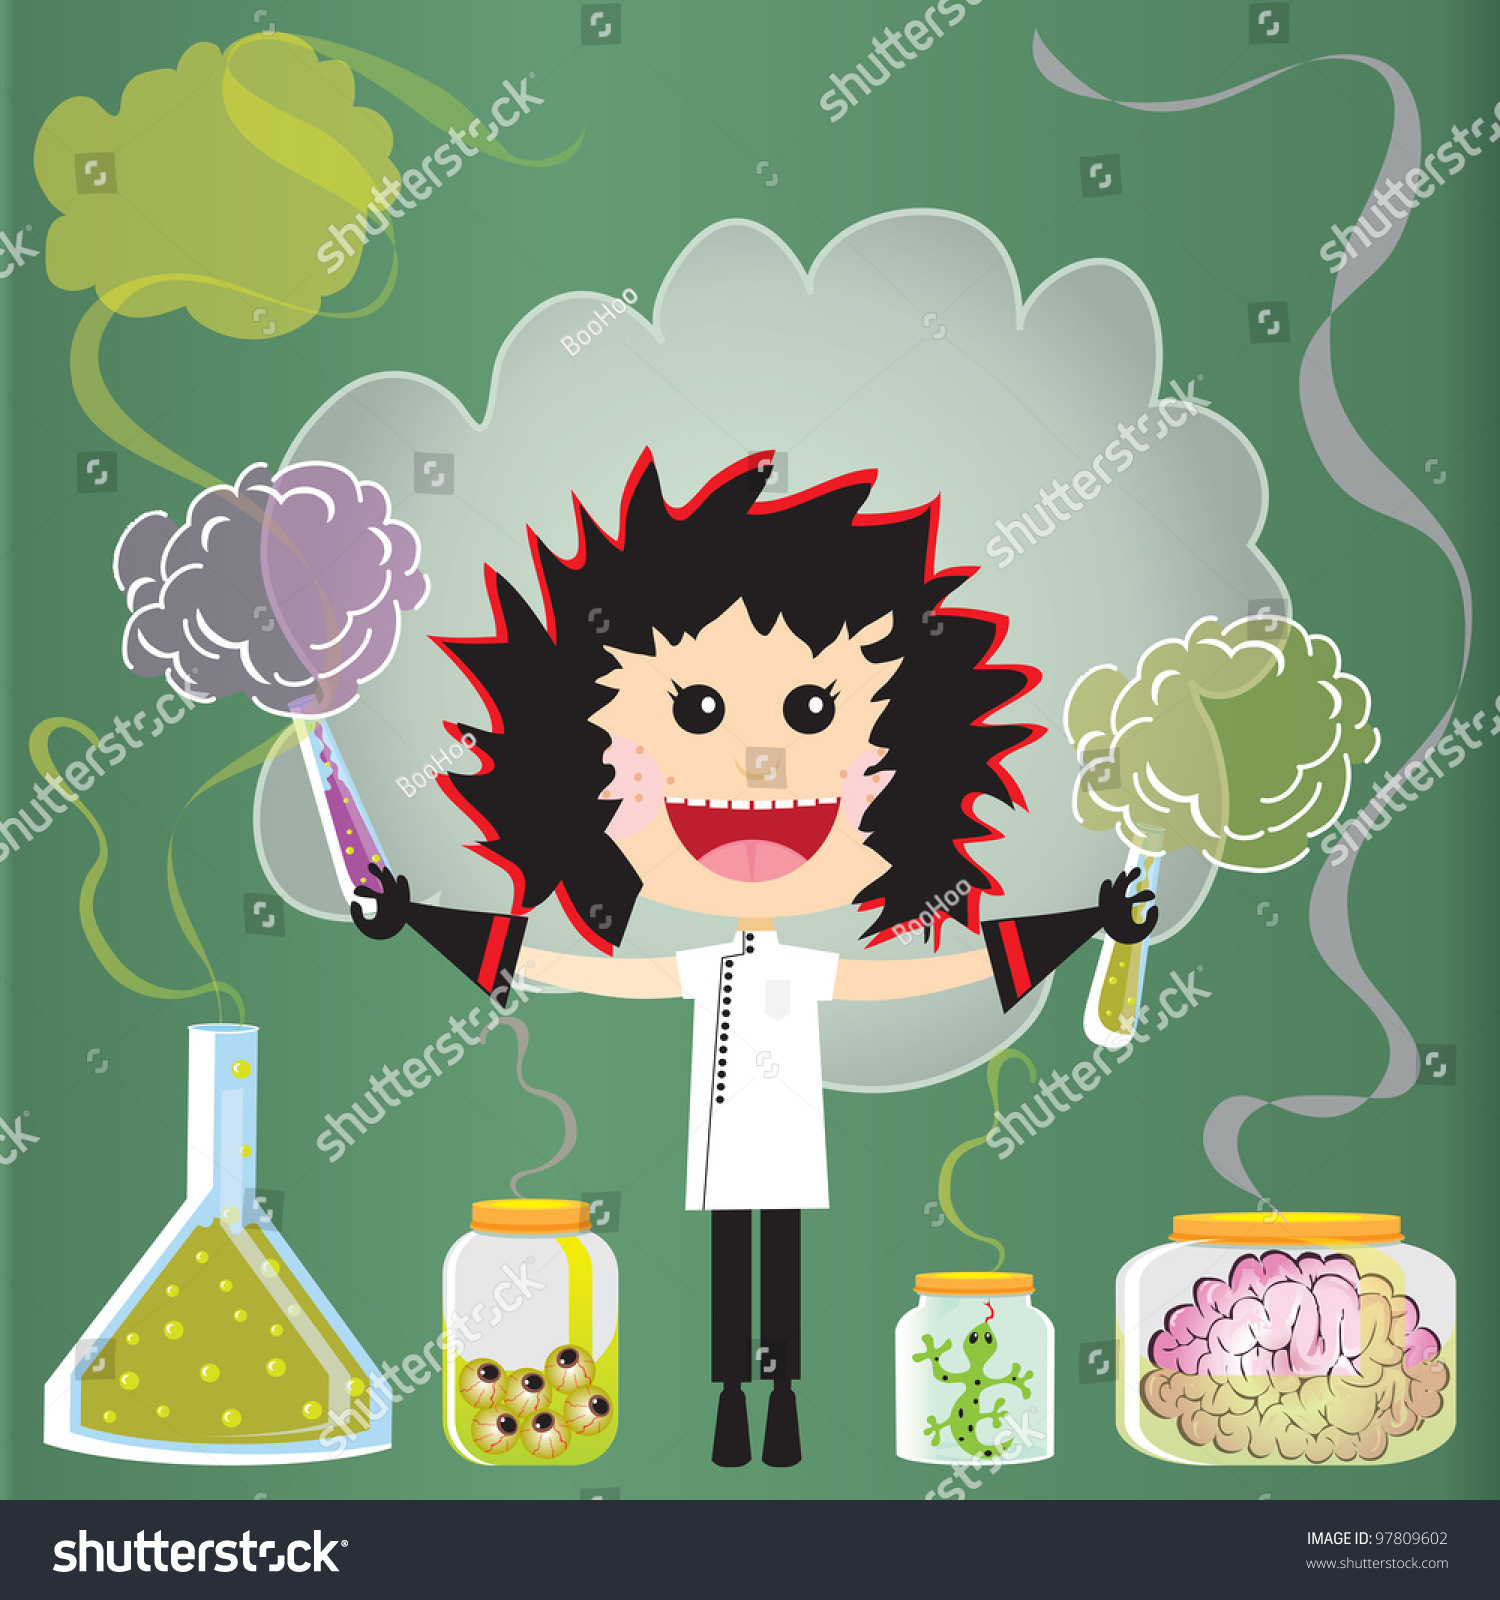 Mad Scientist Birthday Party Invitations Puffs Stock Vector ...